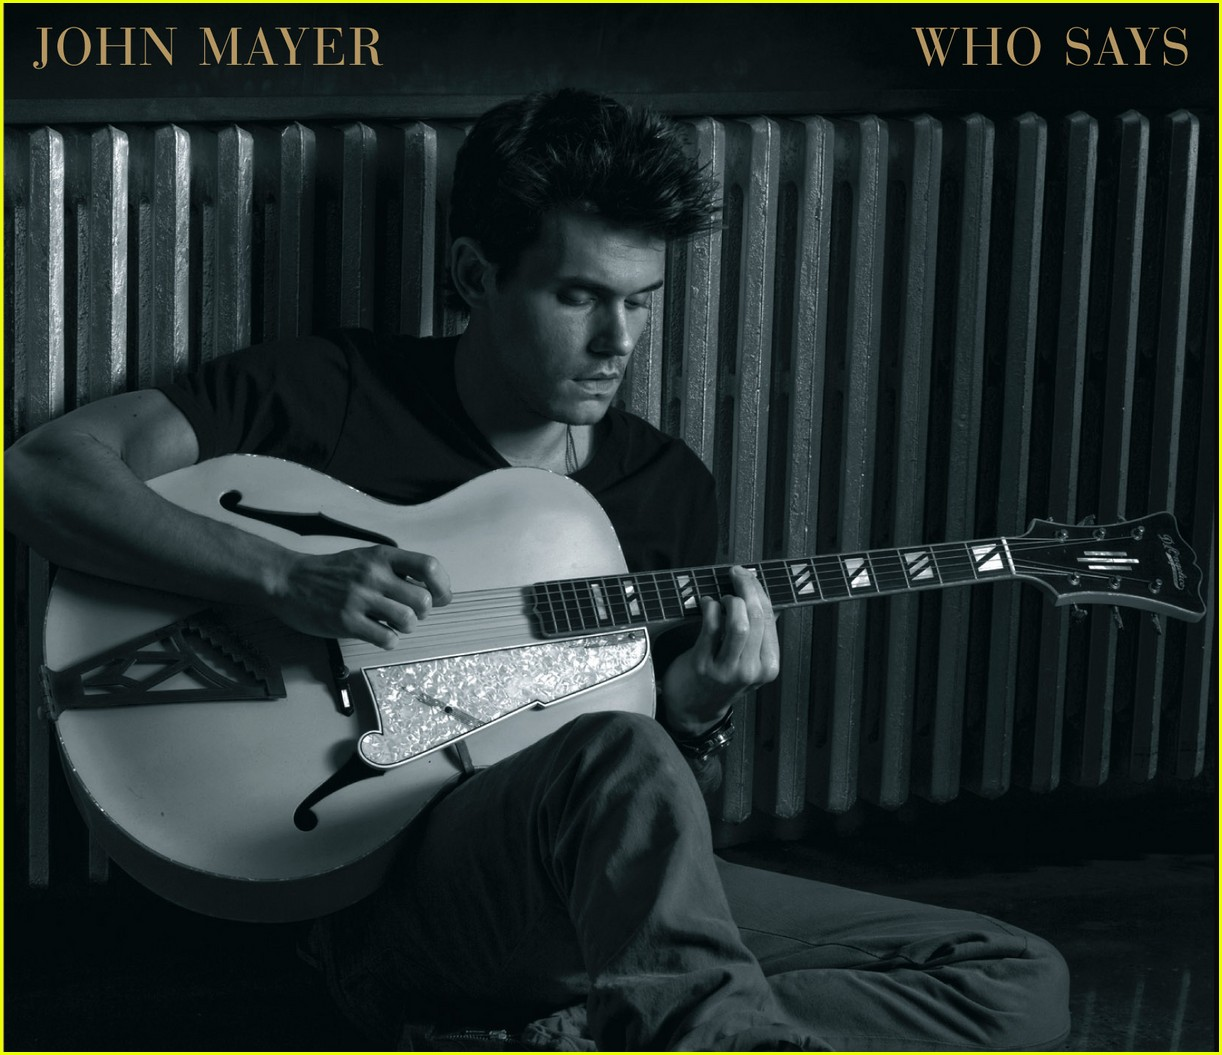 john-mayer-who-says-artwork-01.jpg